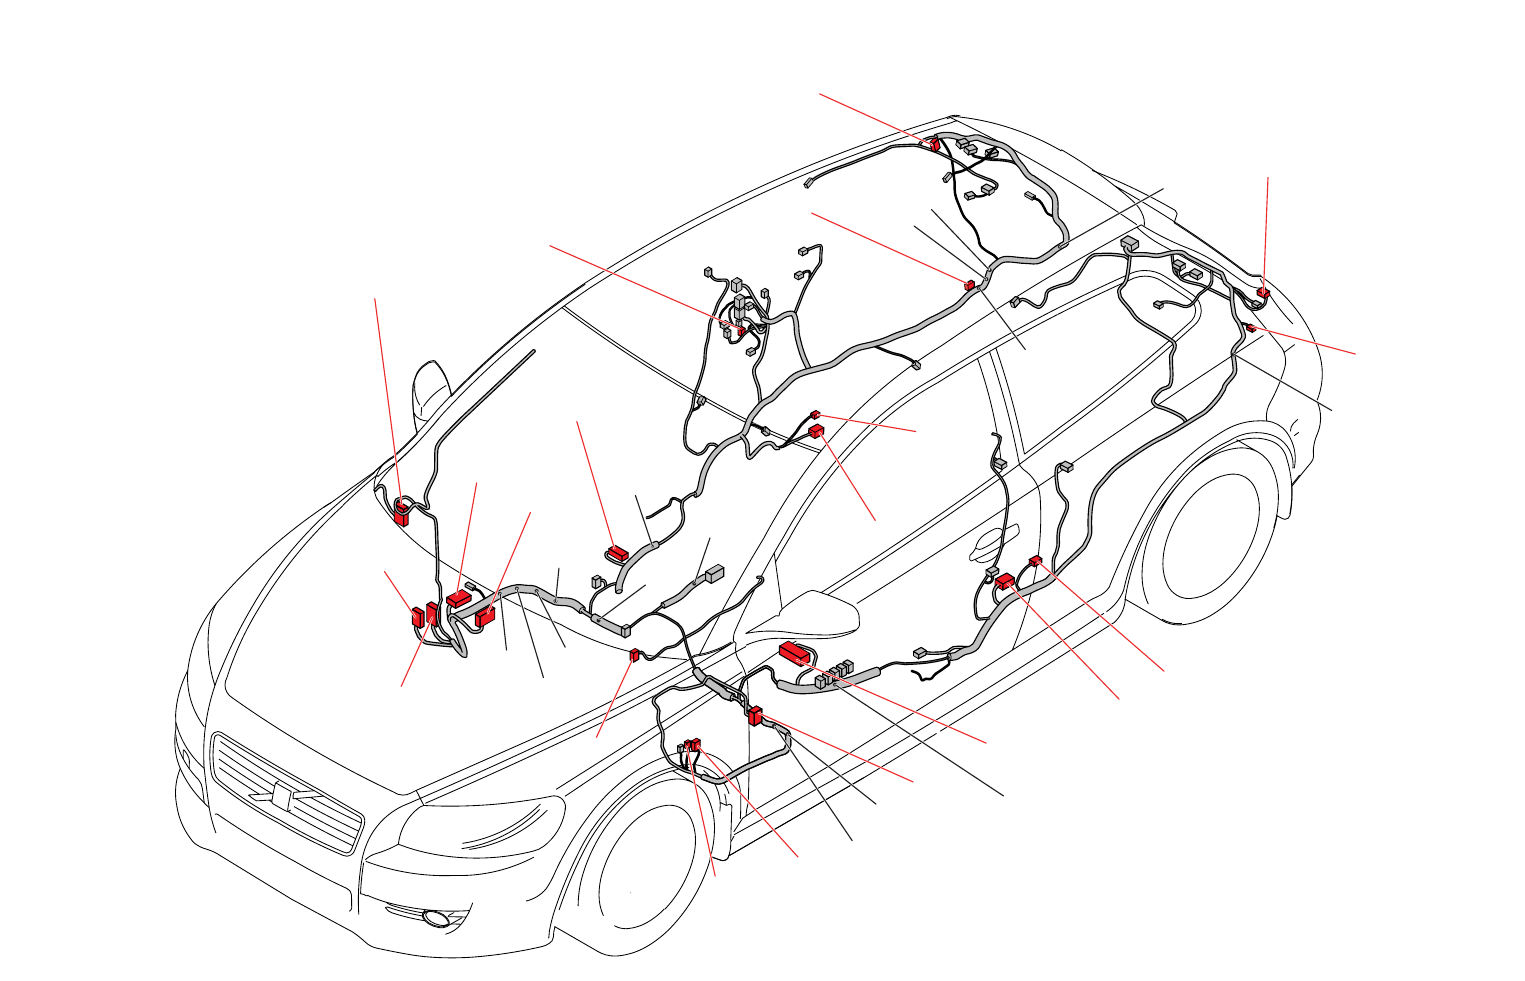 volvo c30 wiring diagram rcl zaislunamai uk Volvo 850 Air Conditioning Diagram tp39103202 2007 c30 wiring diagram pdf rh manuals co volvo c30 2007 wiring diagram volvo c30 headlight wiring diagram